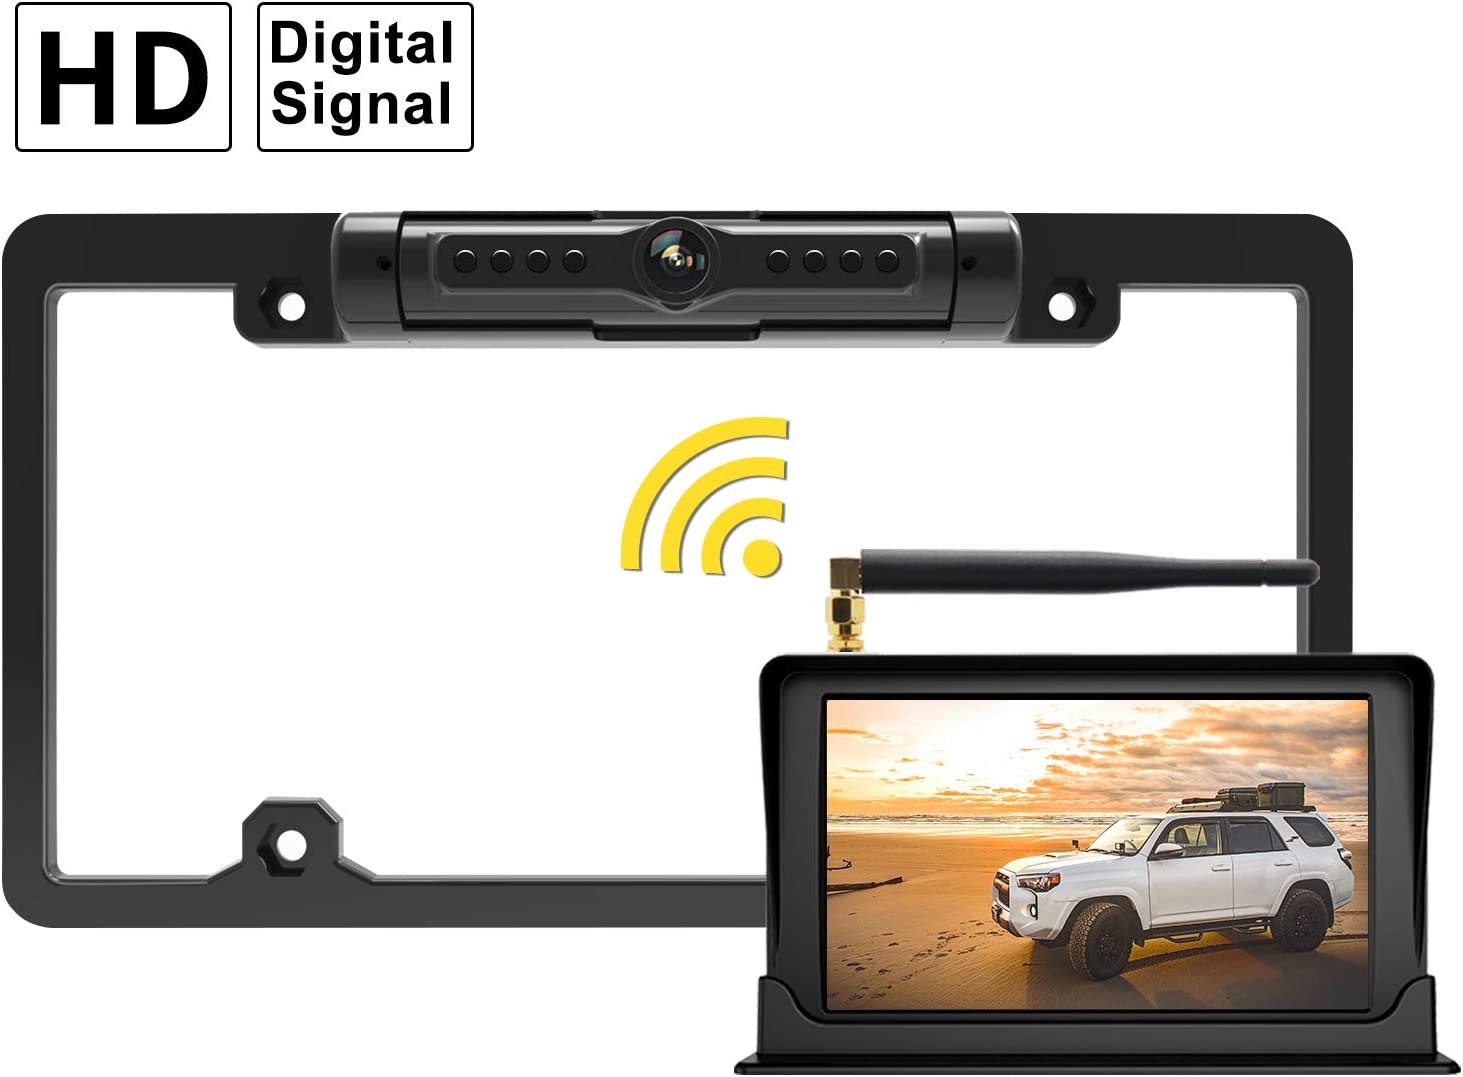 "FOOKOO Wireless Backup Camera and Monitor Kit 5"" HD Screen License Plate Camera with Frame IP69K Waterproof Rear View Camera with Parking Lines Universal for All Cars as SUV, Pickup, Truck, Minivan"